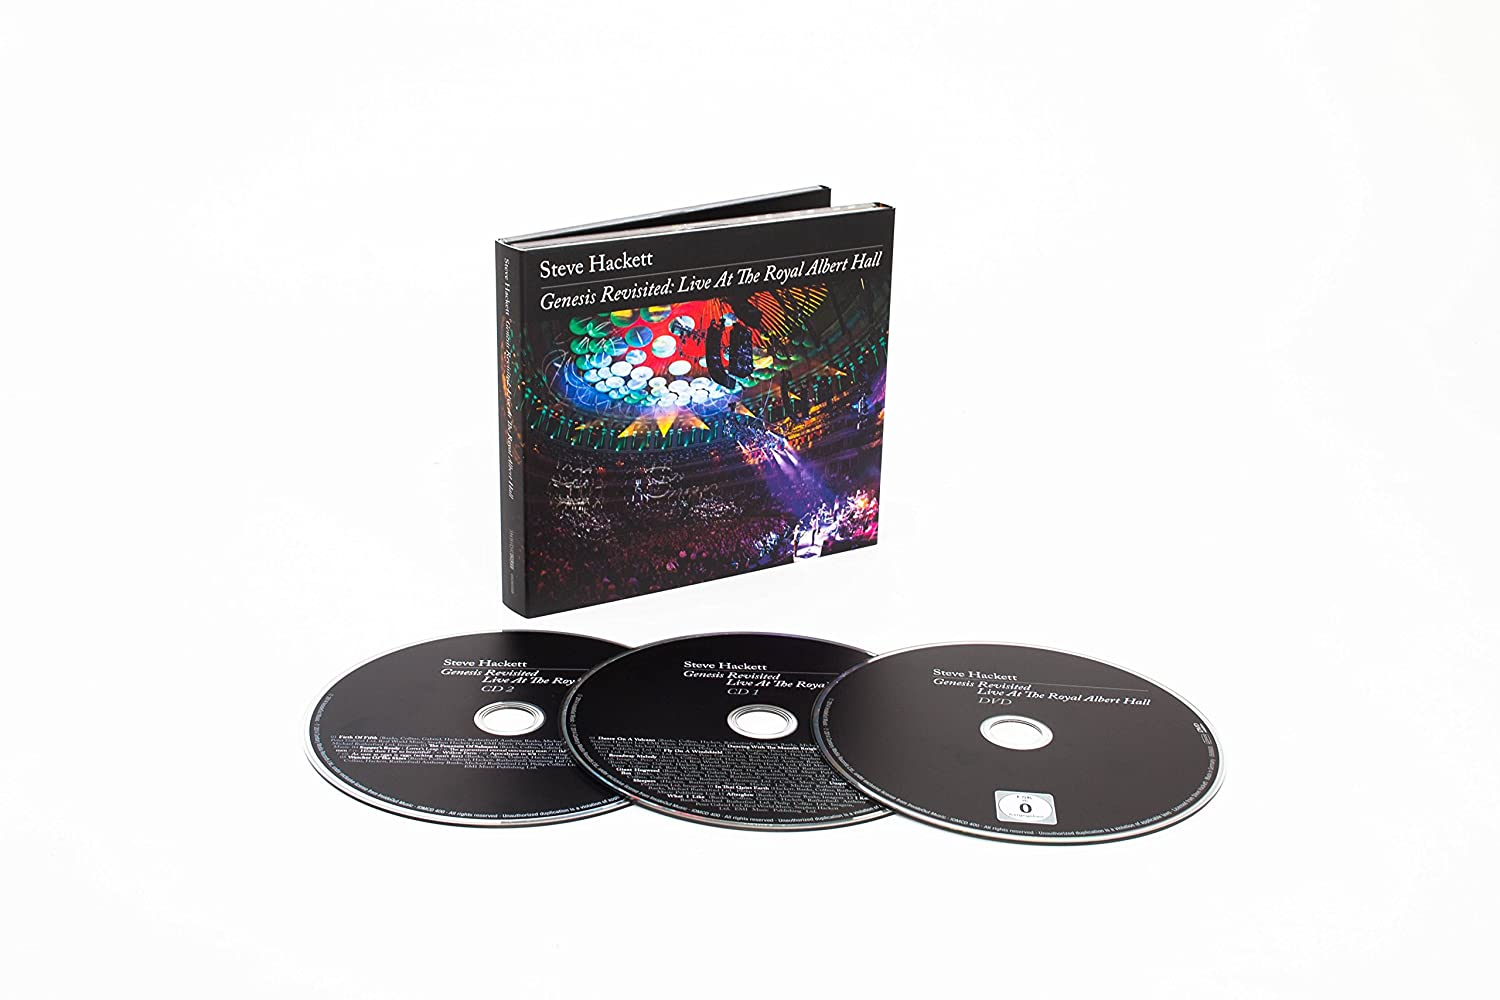 STEVE HACKETT - Genesis Revisited-Live at the Royal Albert Hall - Amazon.com Music